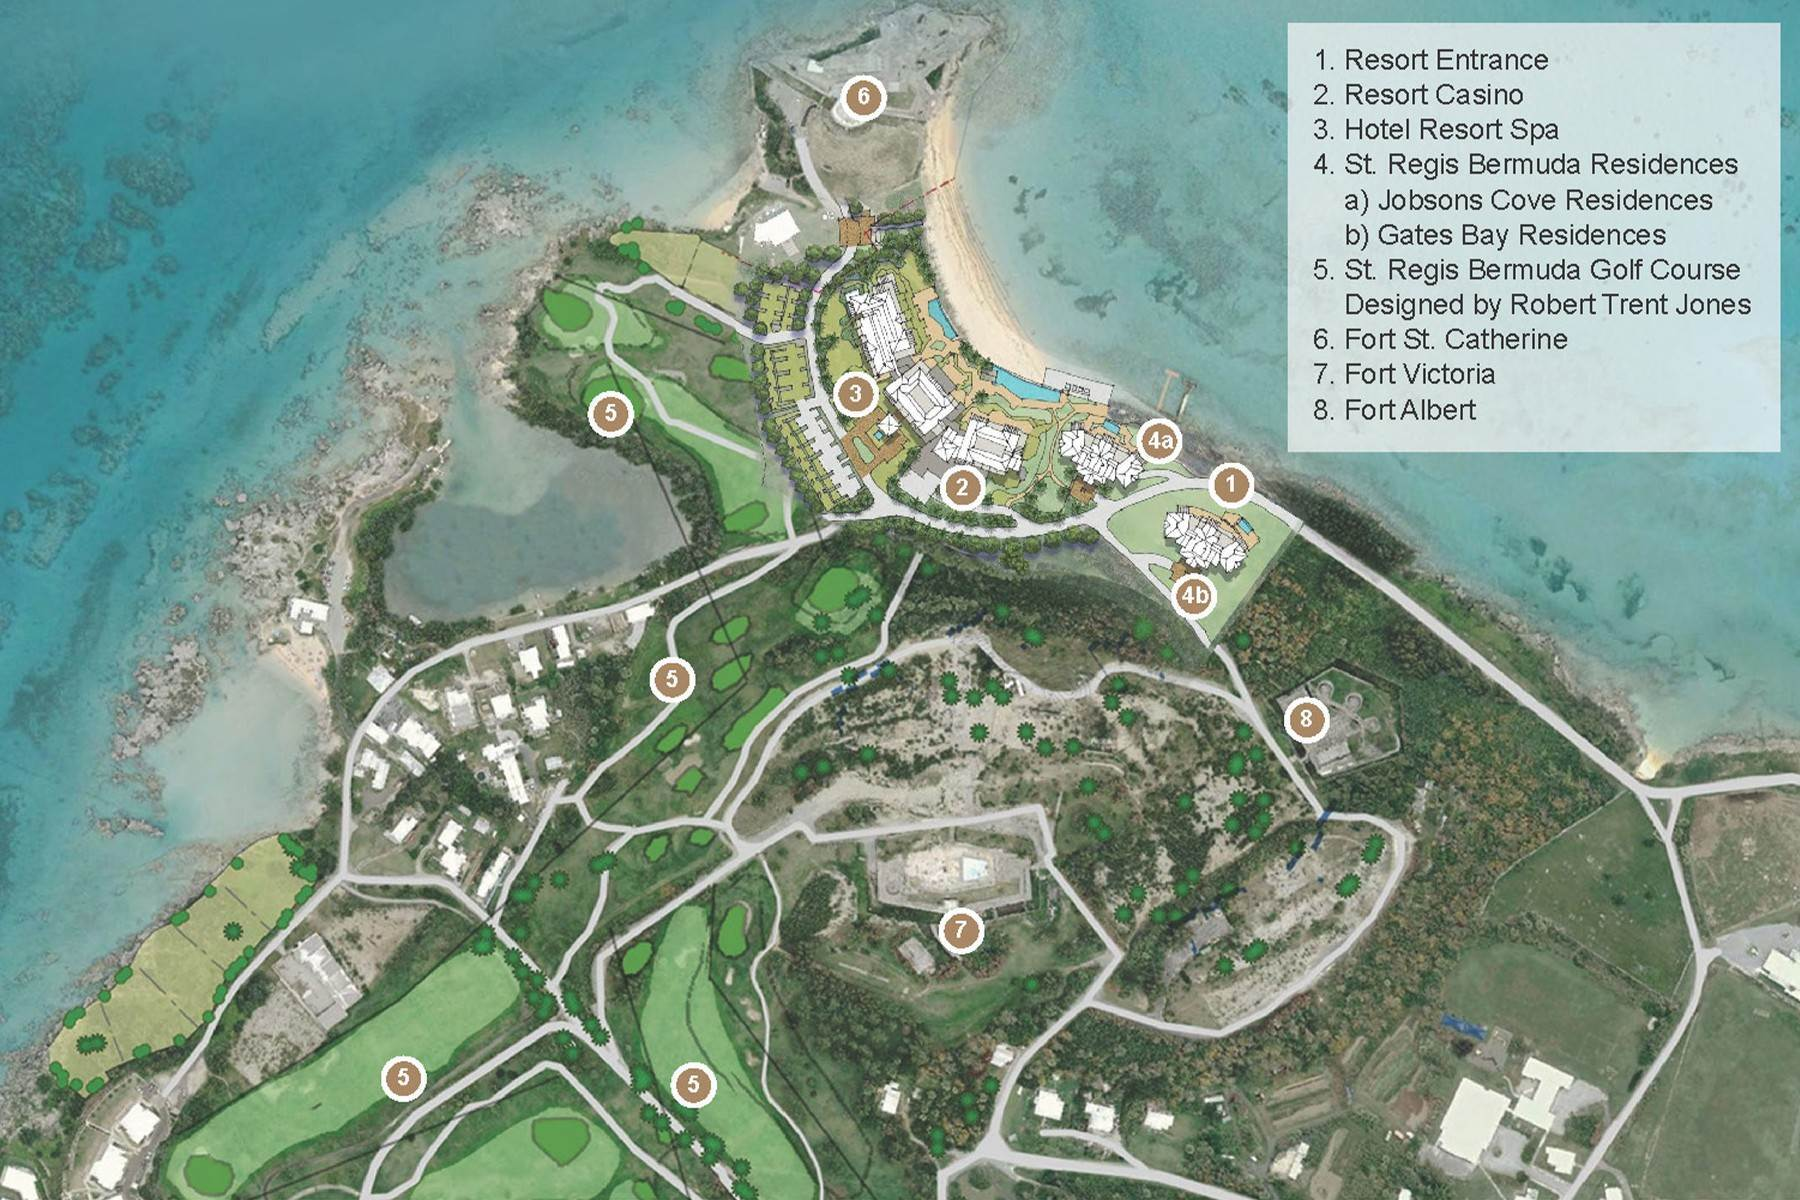 19. Condo / Townhouse / Flat for Sale at St. Regis Bermuda Residences - Gates Bay PHB St. Catherine's Beach St Georges Parish, GE03 Bermuda